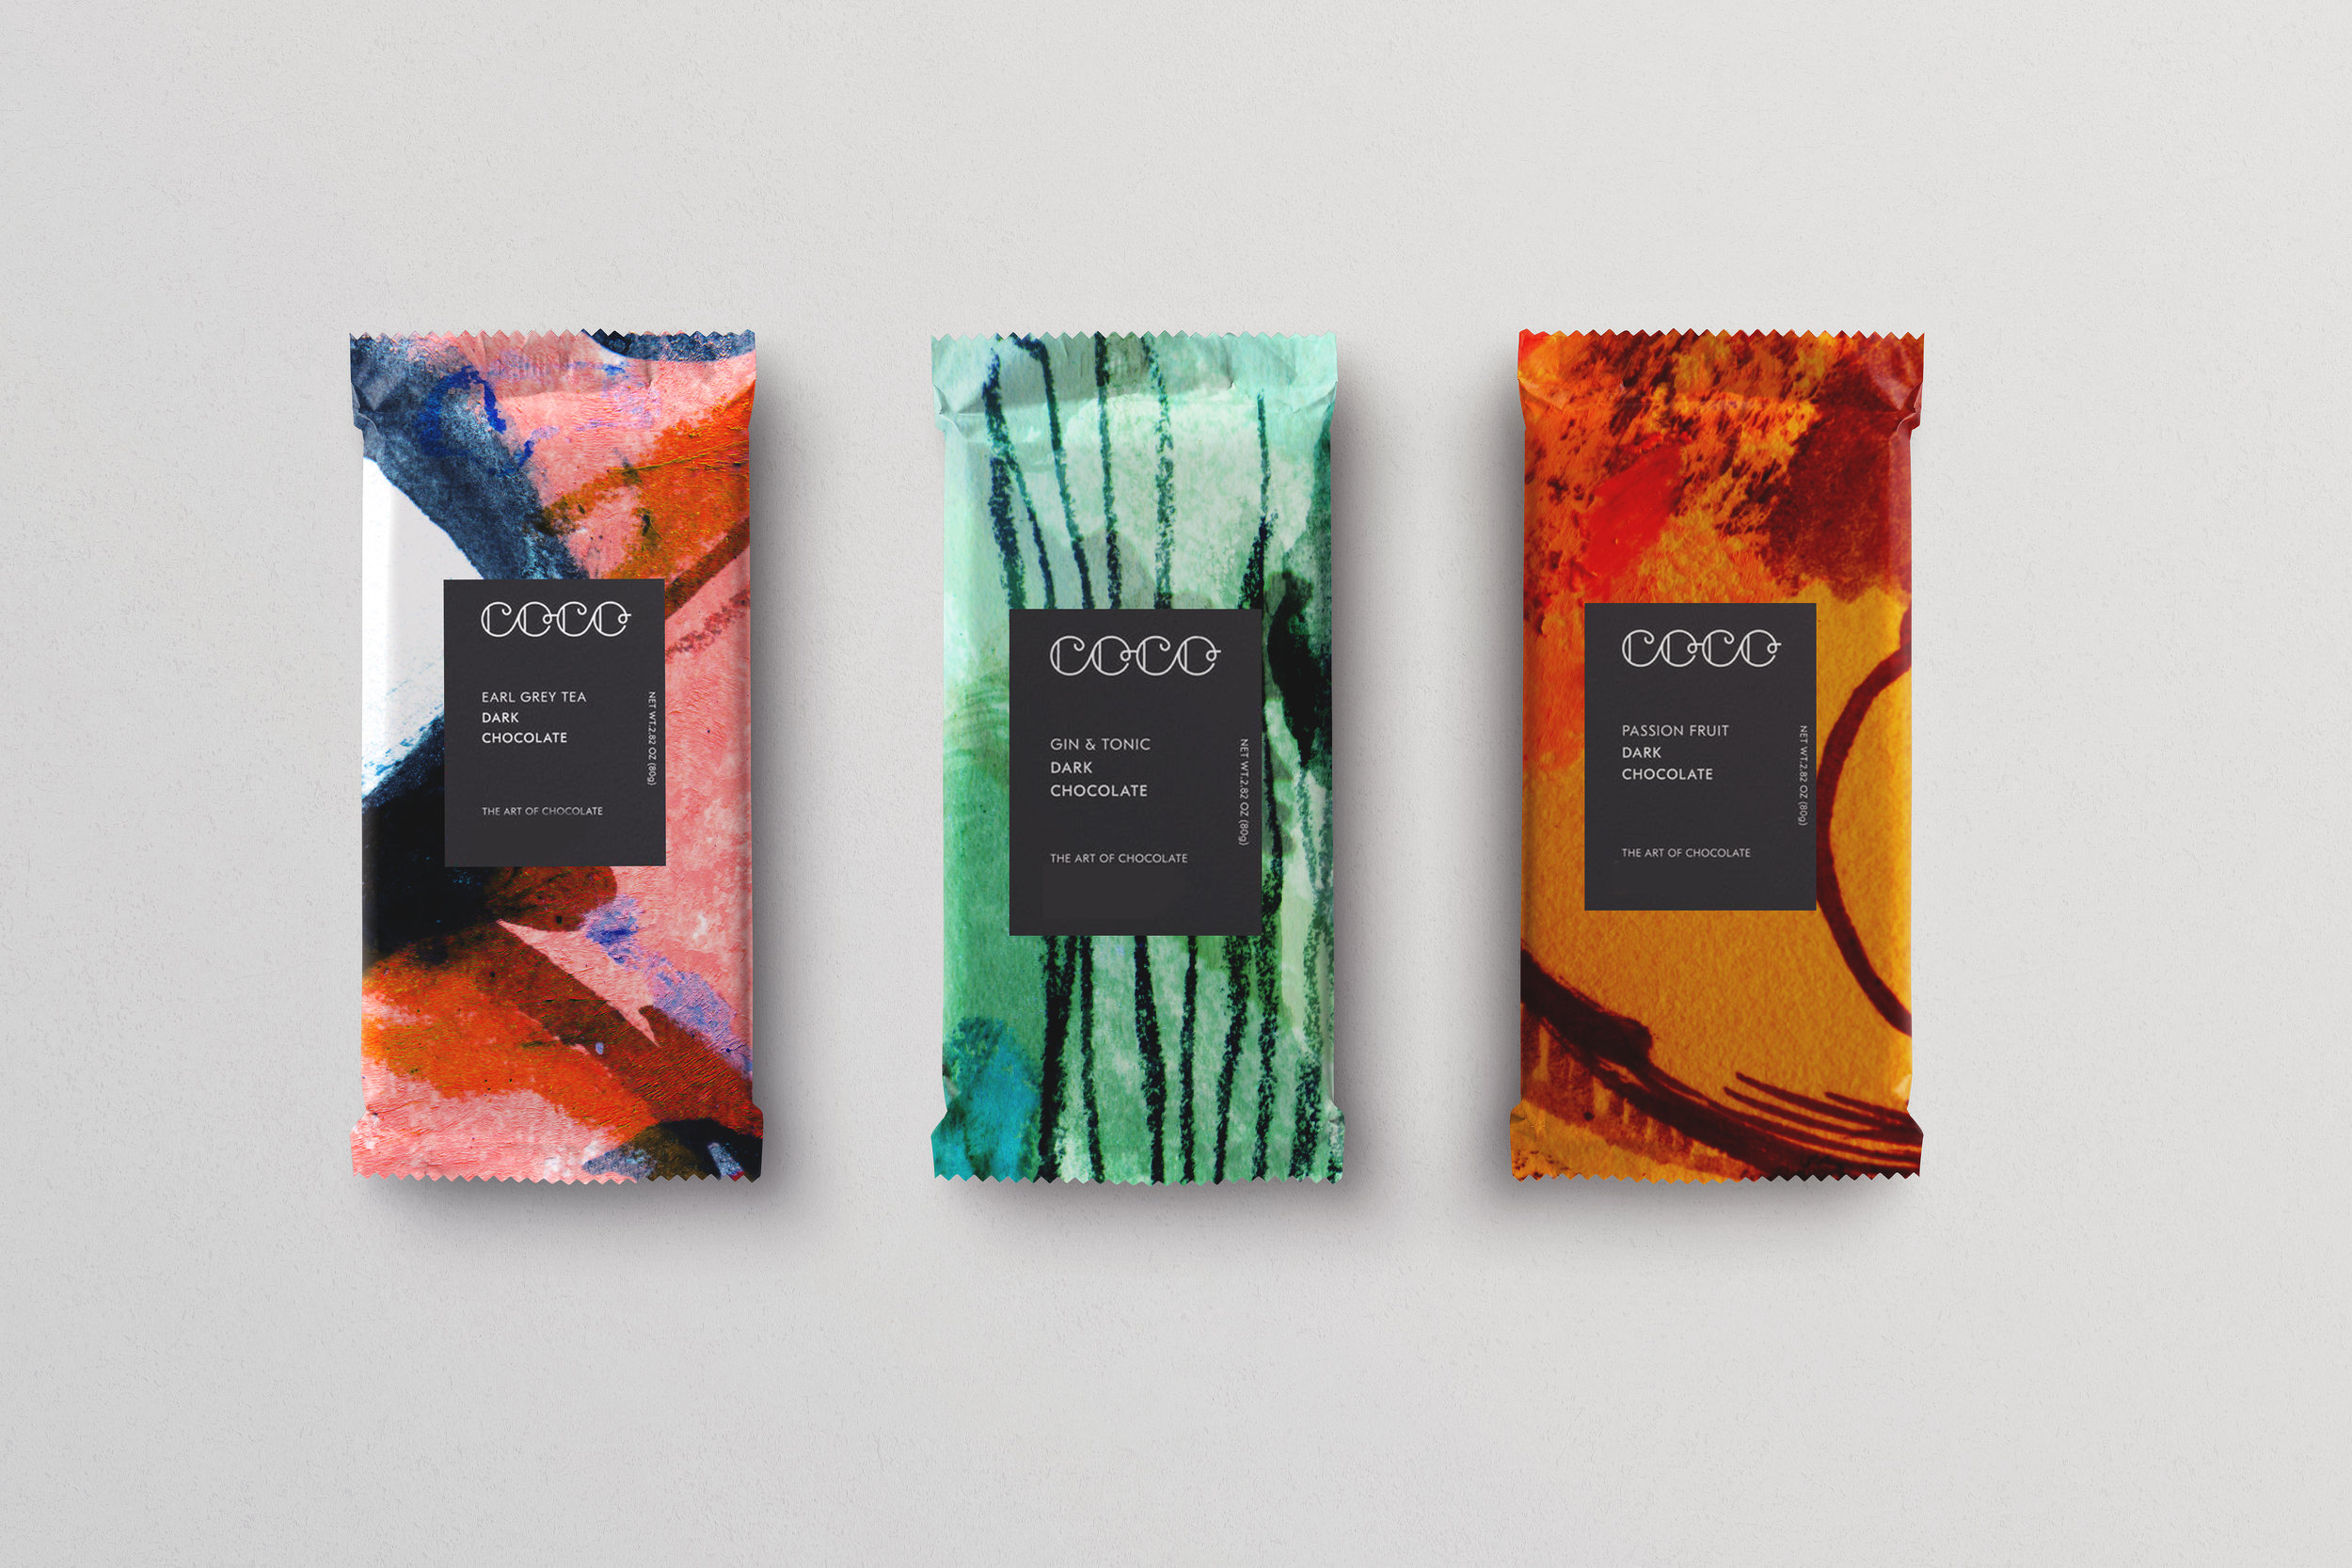 Speculative Packaging Design for COCO Chocolatier's Early Grey, Gin & Tonic and Passionfruit Chocolate Bars, 2019.